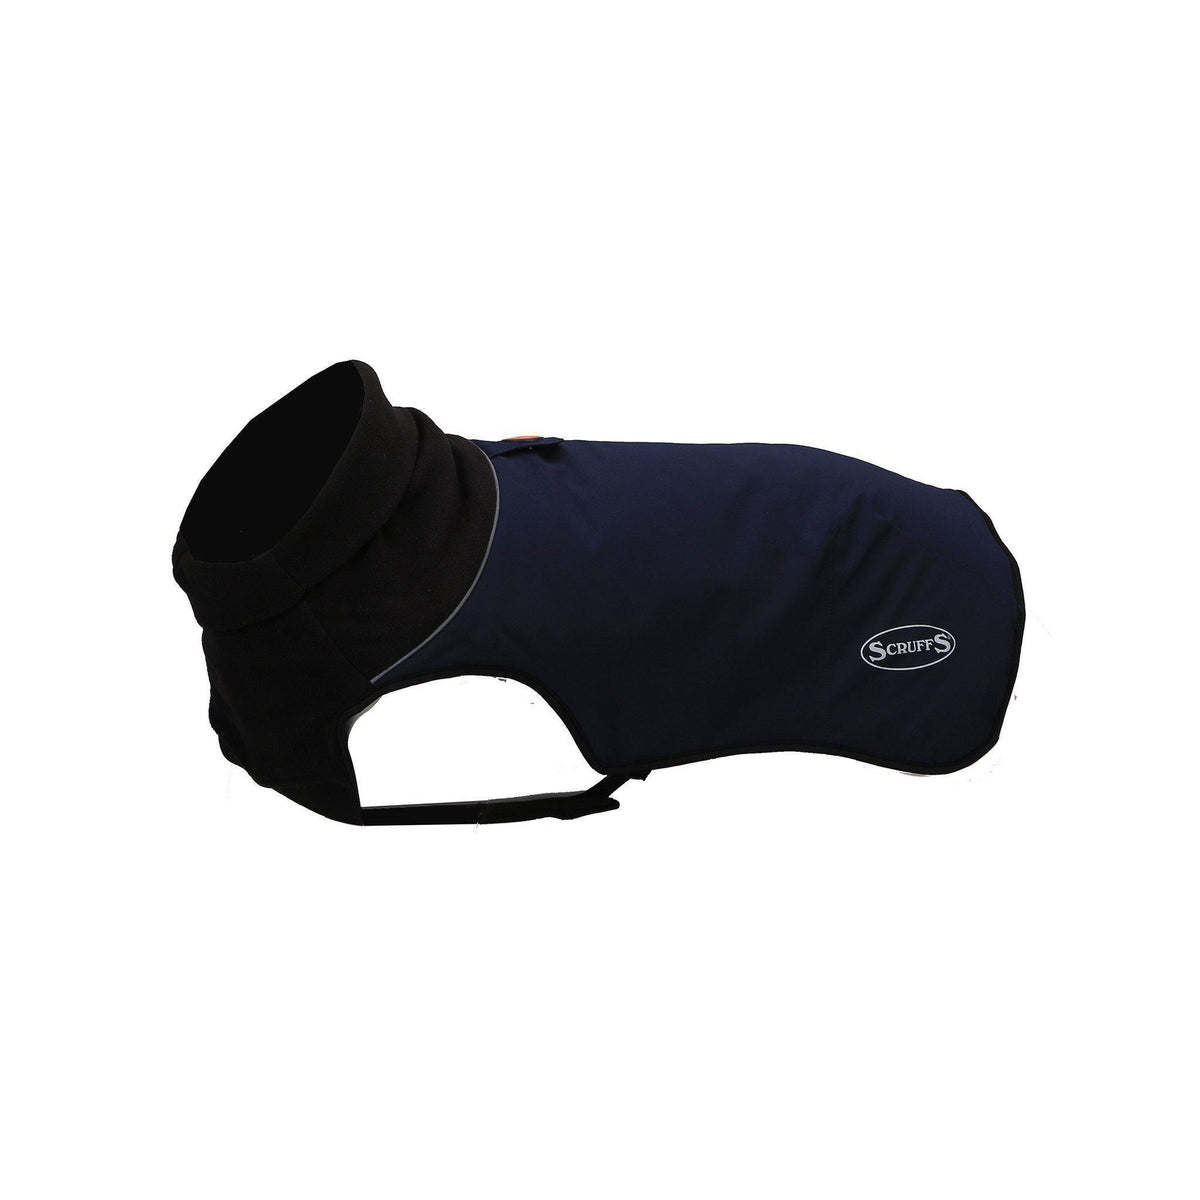 Scruffs Thermal Dog Coat - Navy Blue - ComfyPet Products